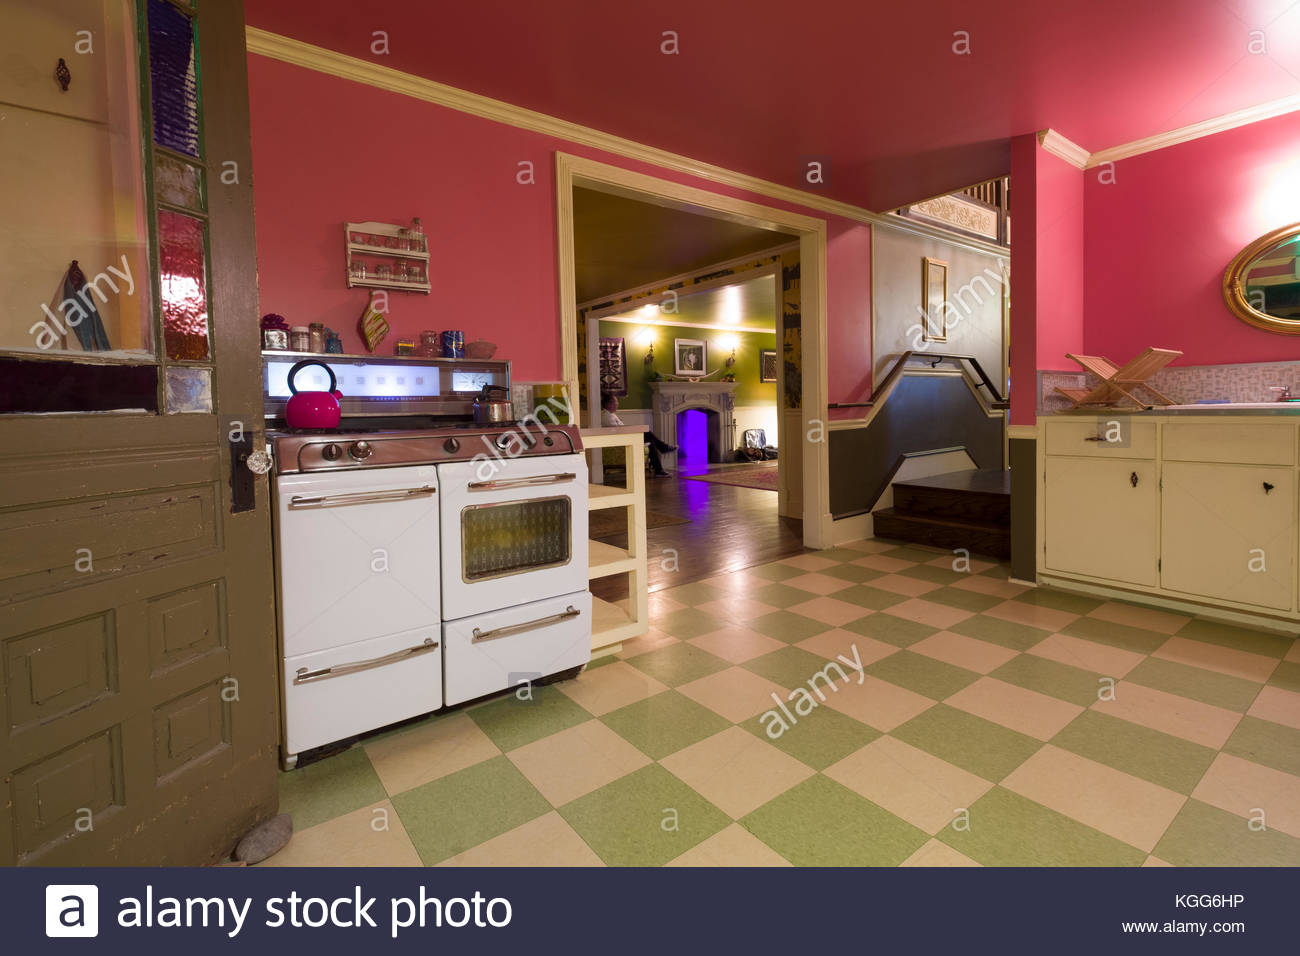 Kitchen Inside The House Of Eternal Return At Meow Wolf Santa Fe Stock Photo Alamy